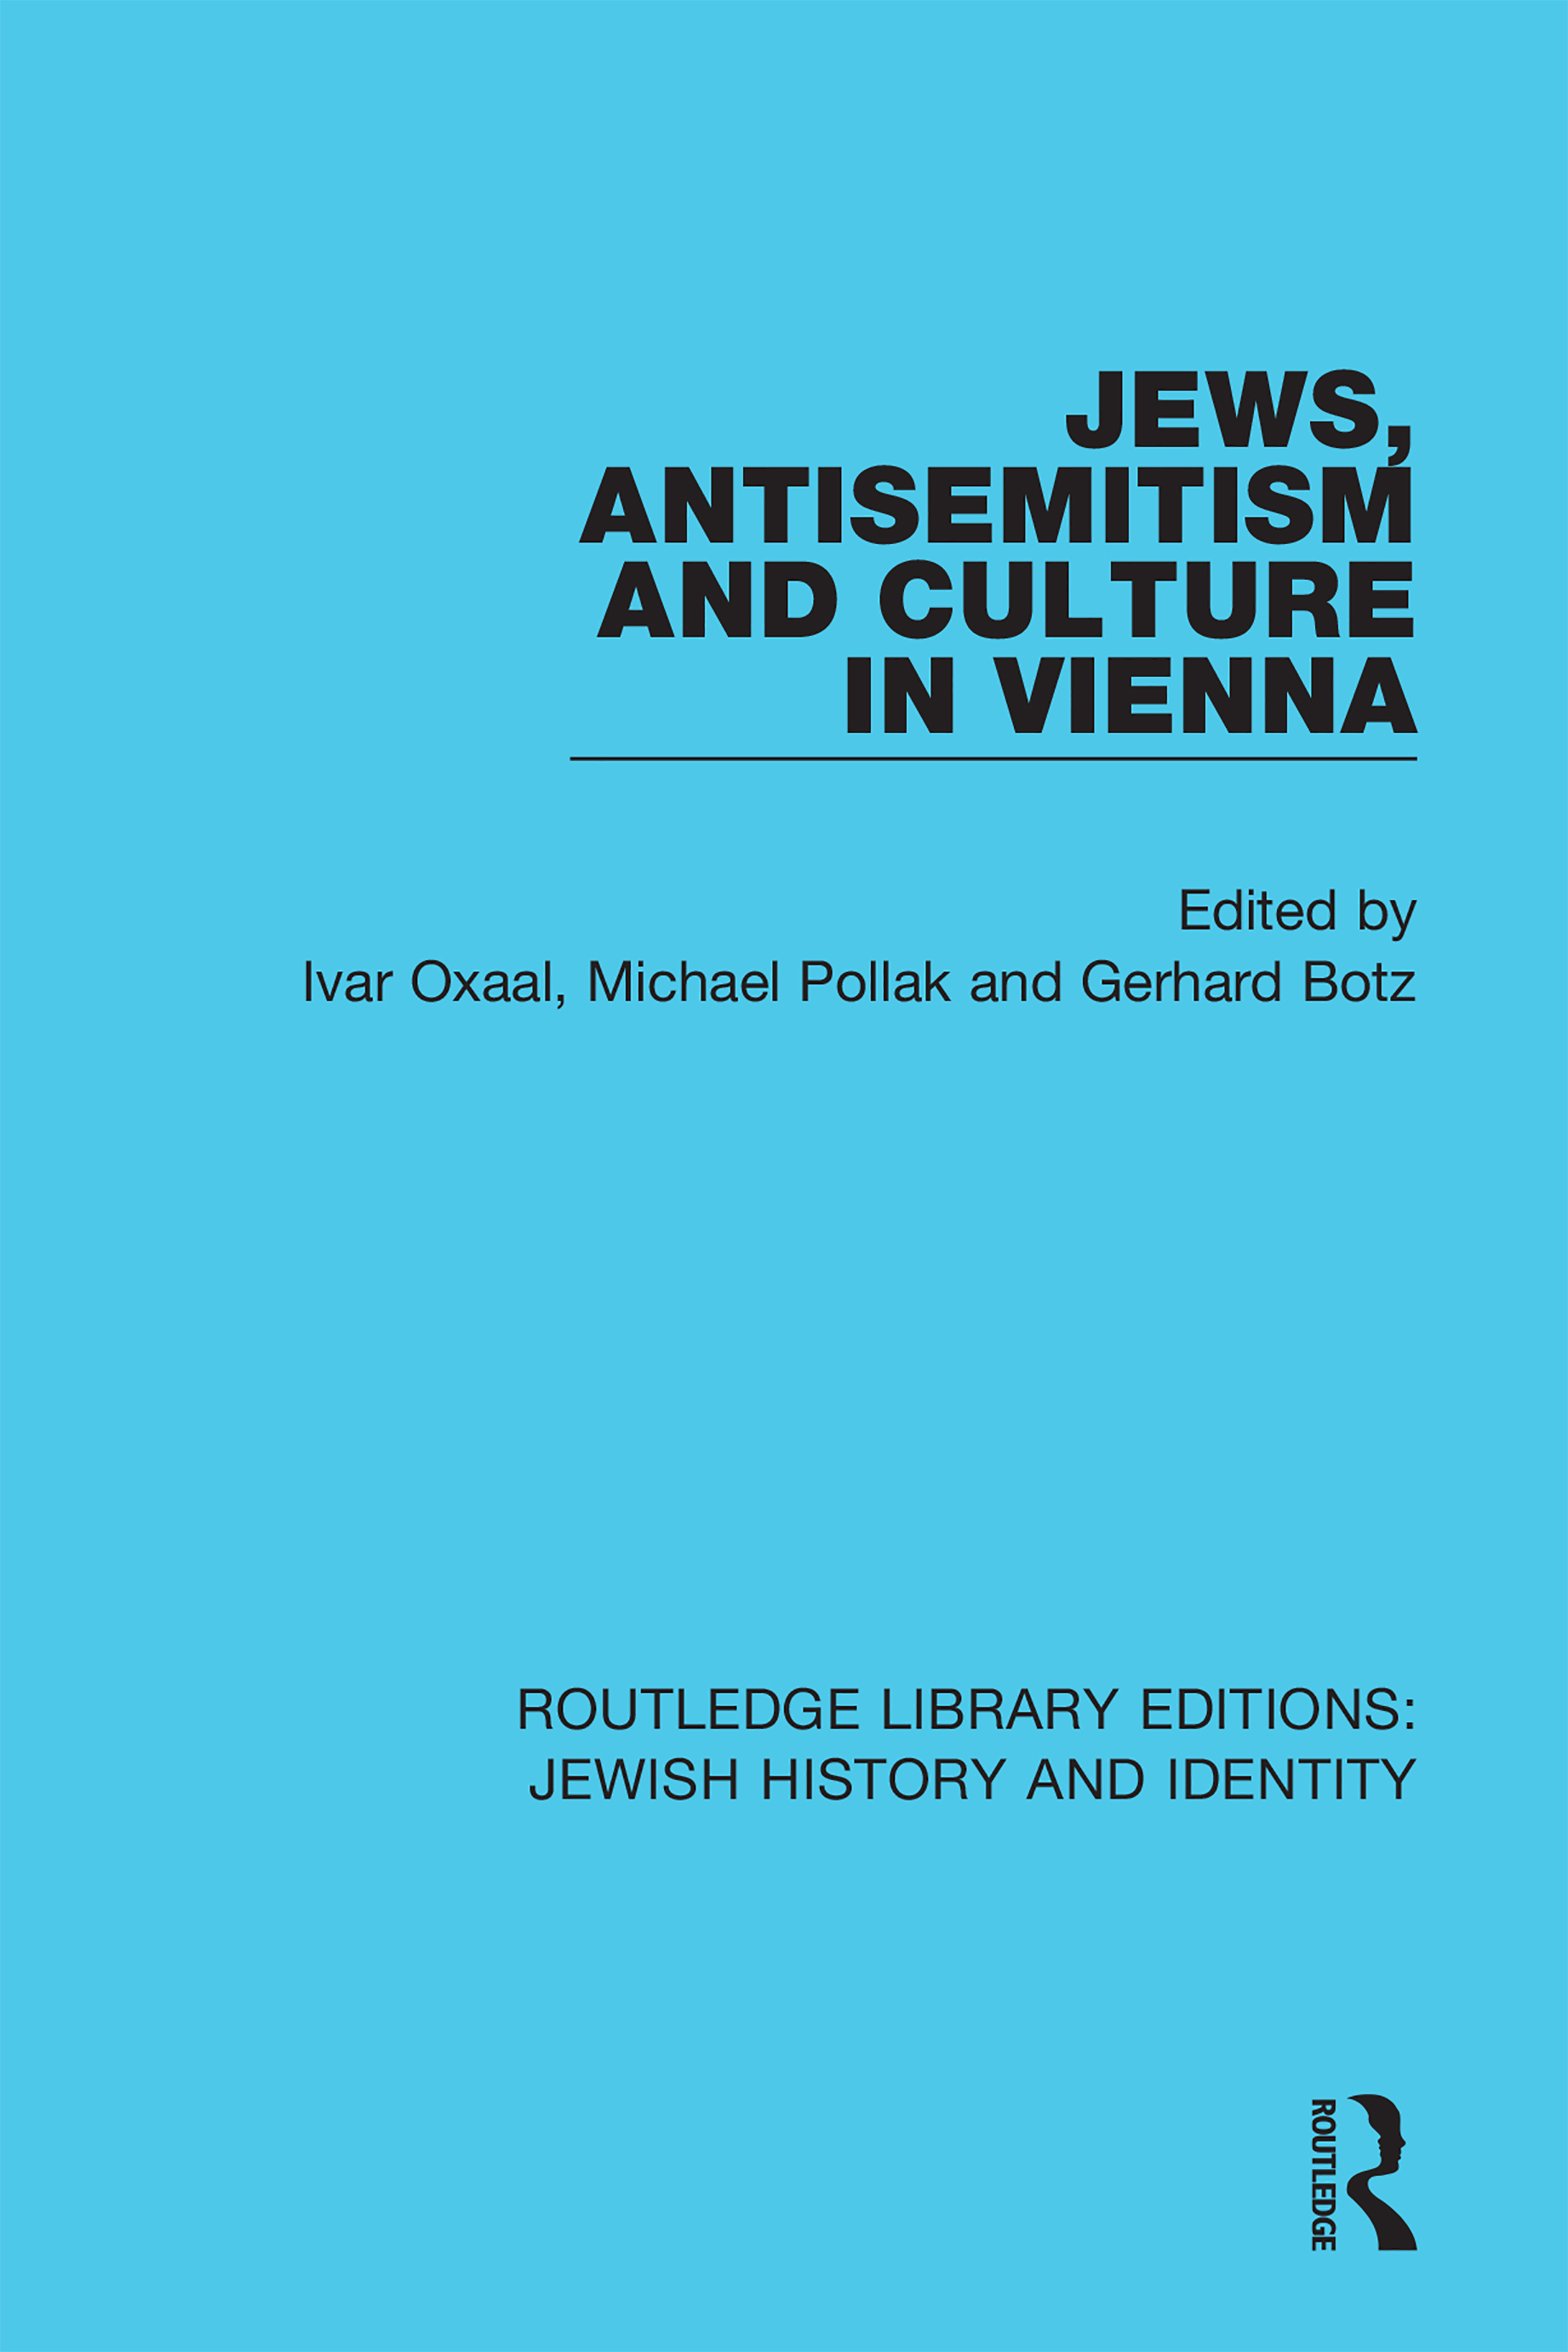 Jews, Antisemitism and Culture in Vienna